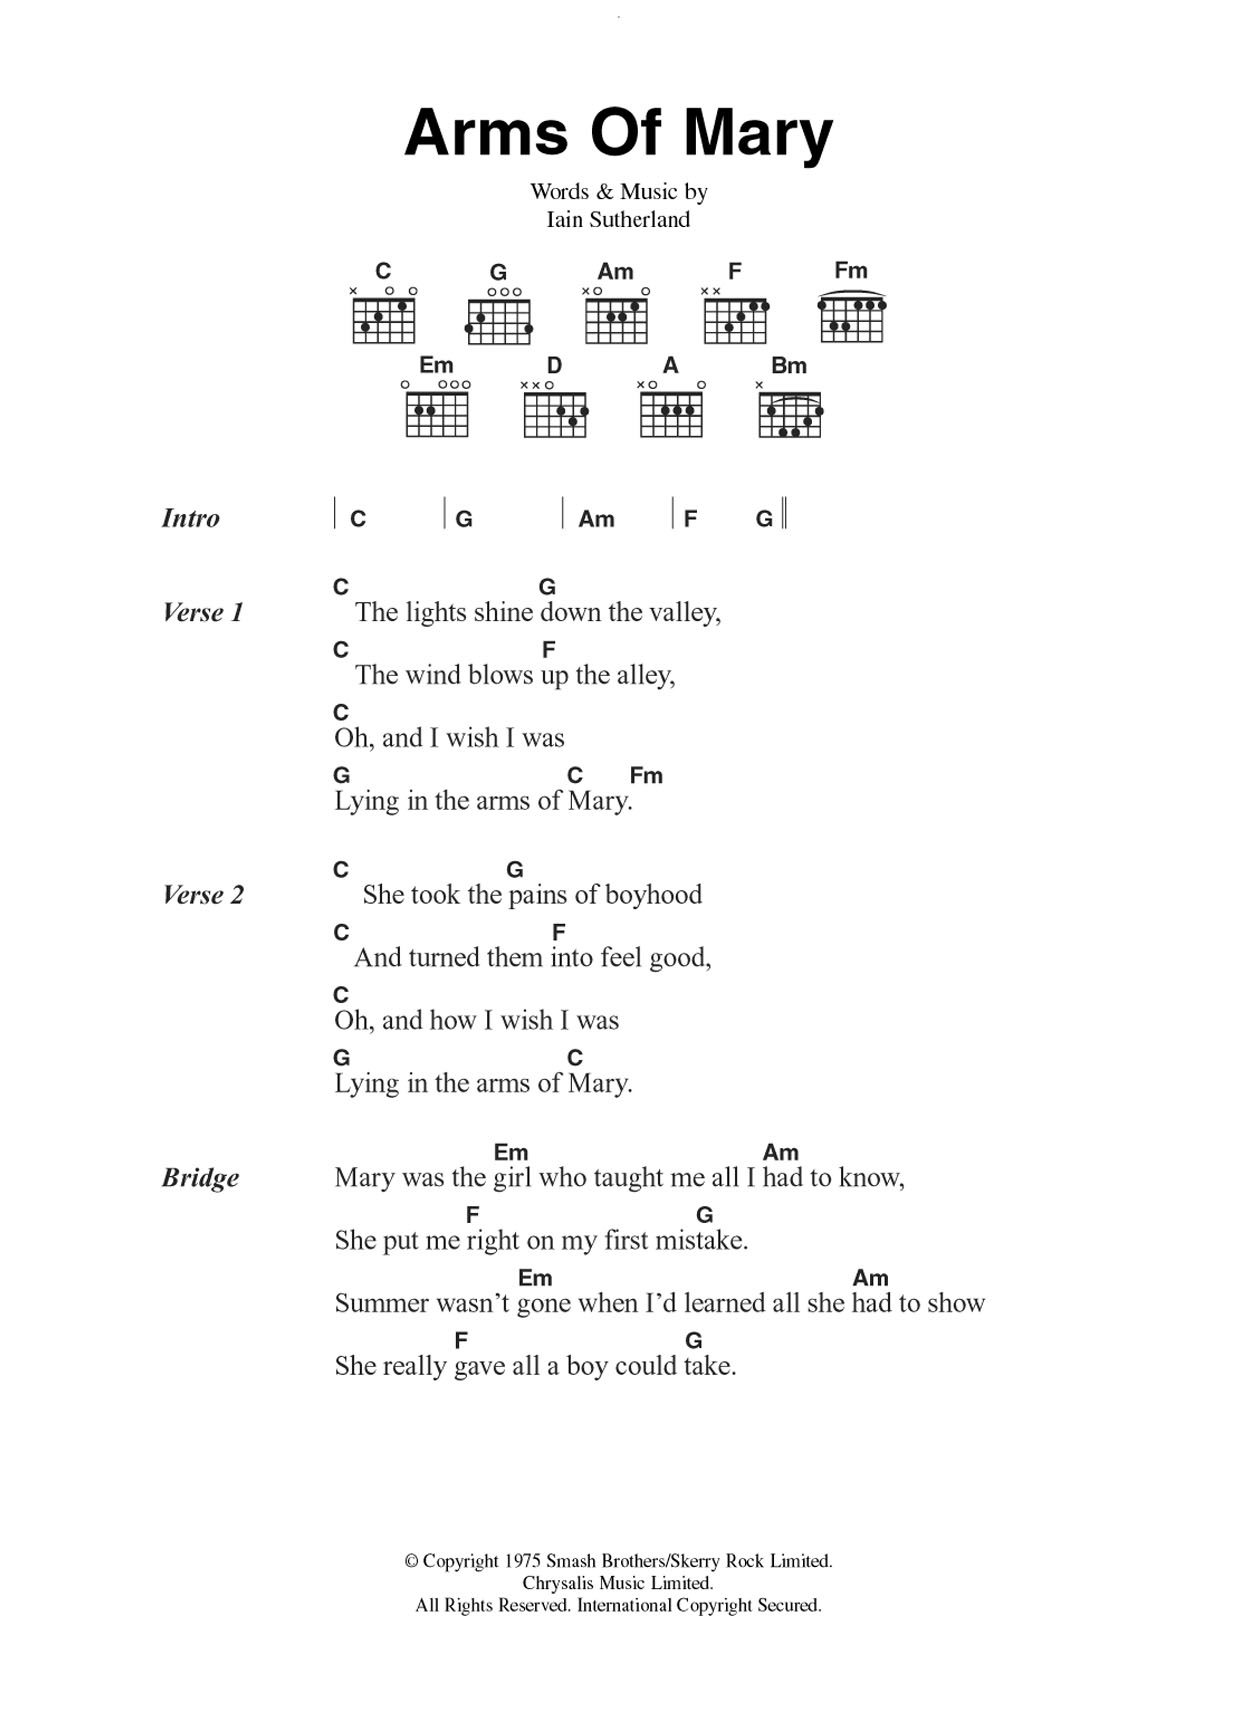 Arms Of Mary Sheet Music